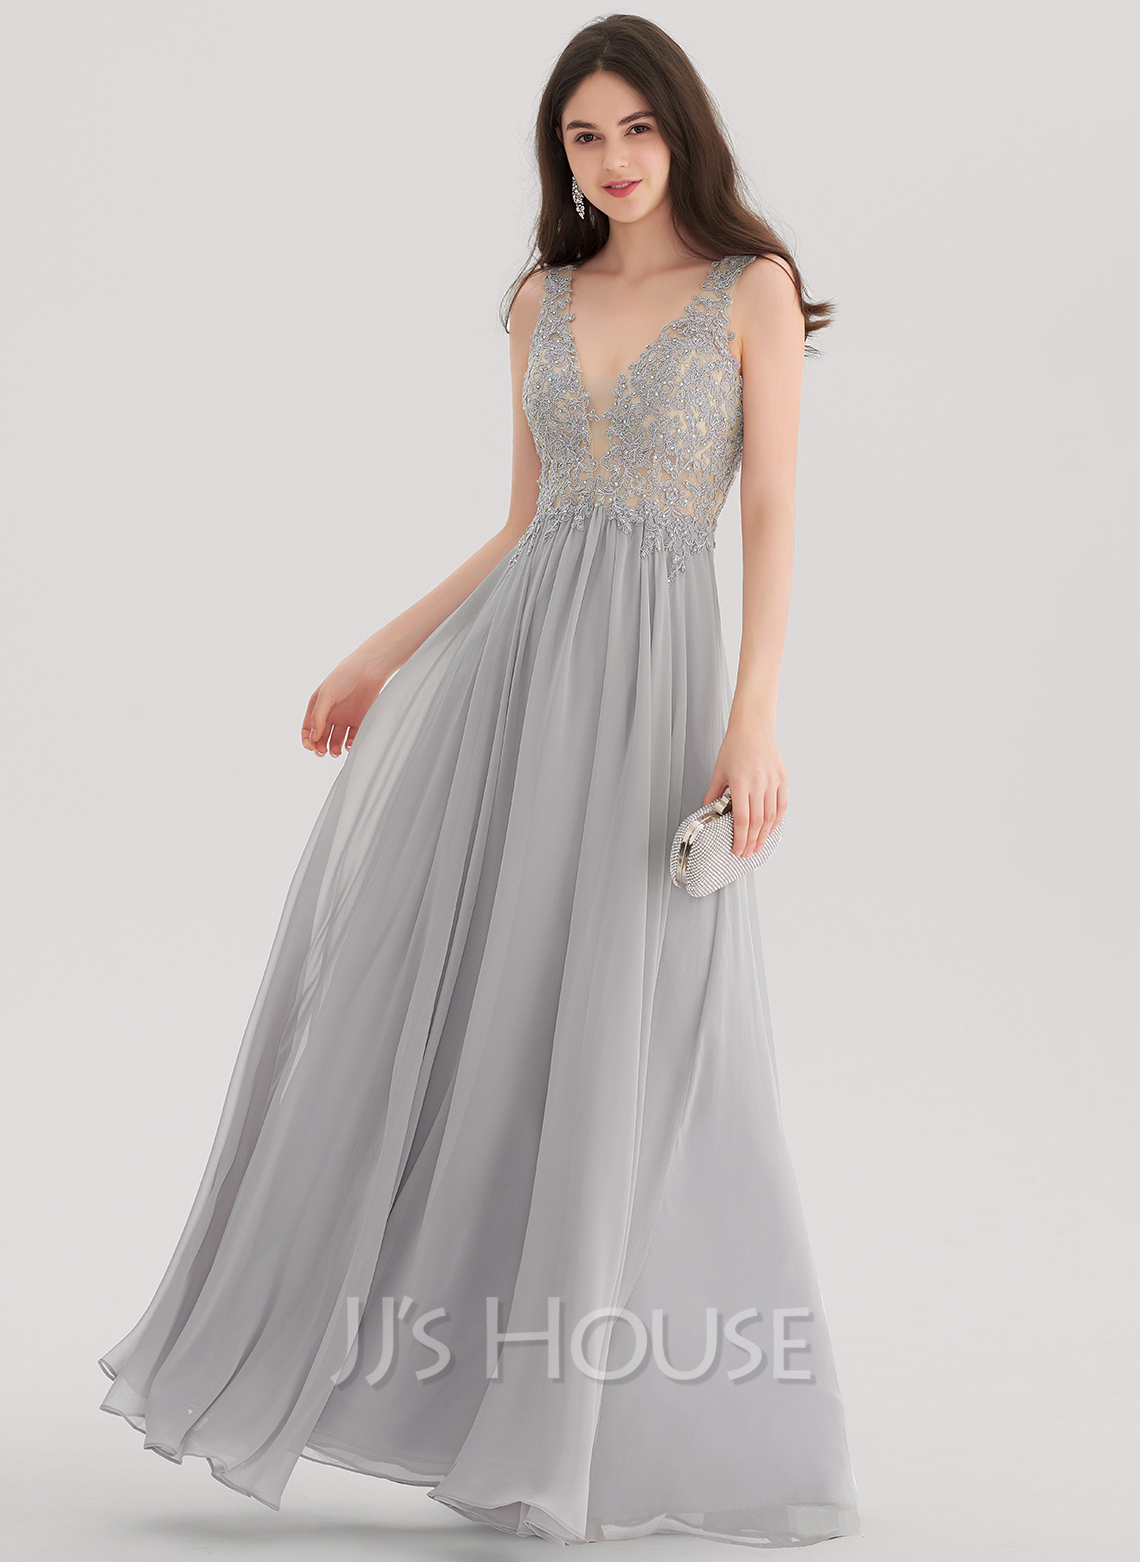 9eb21e1b3 A-Line Princess V-neck Floor-Length Chiffon Evening Dress With ...